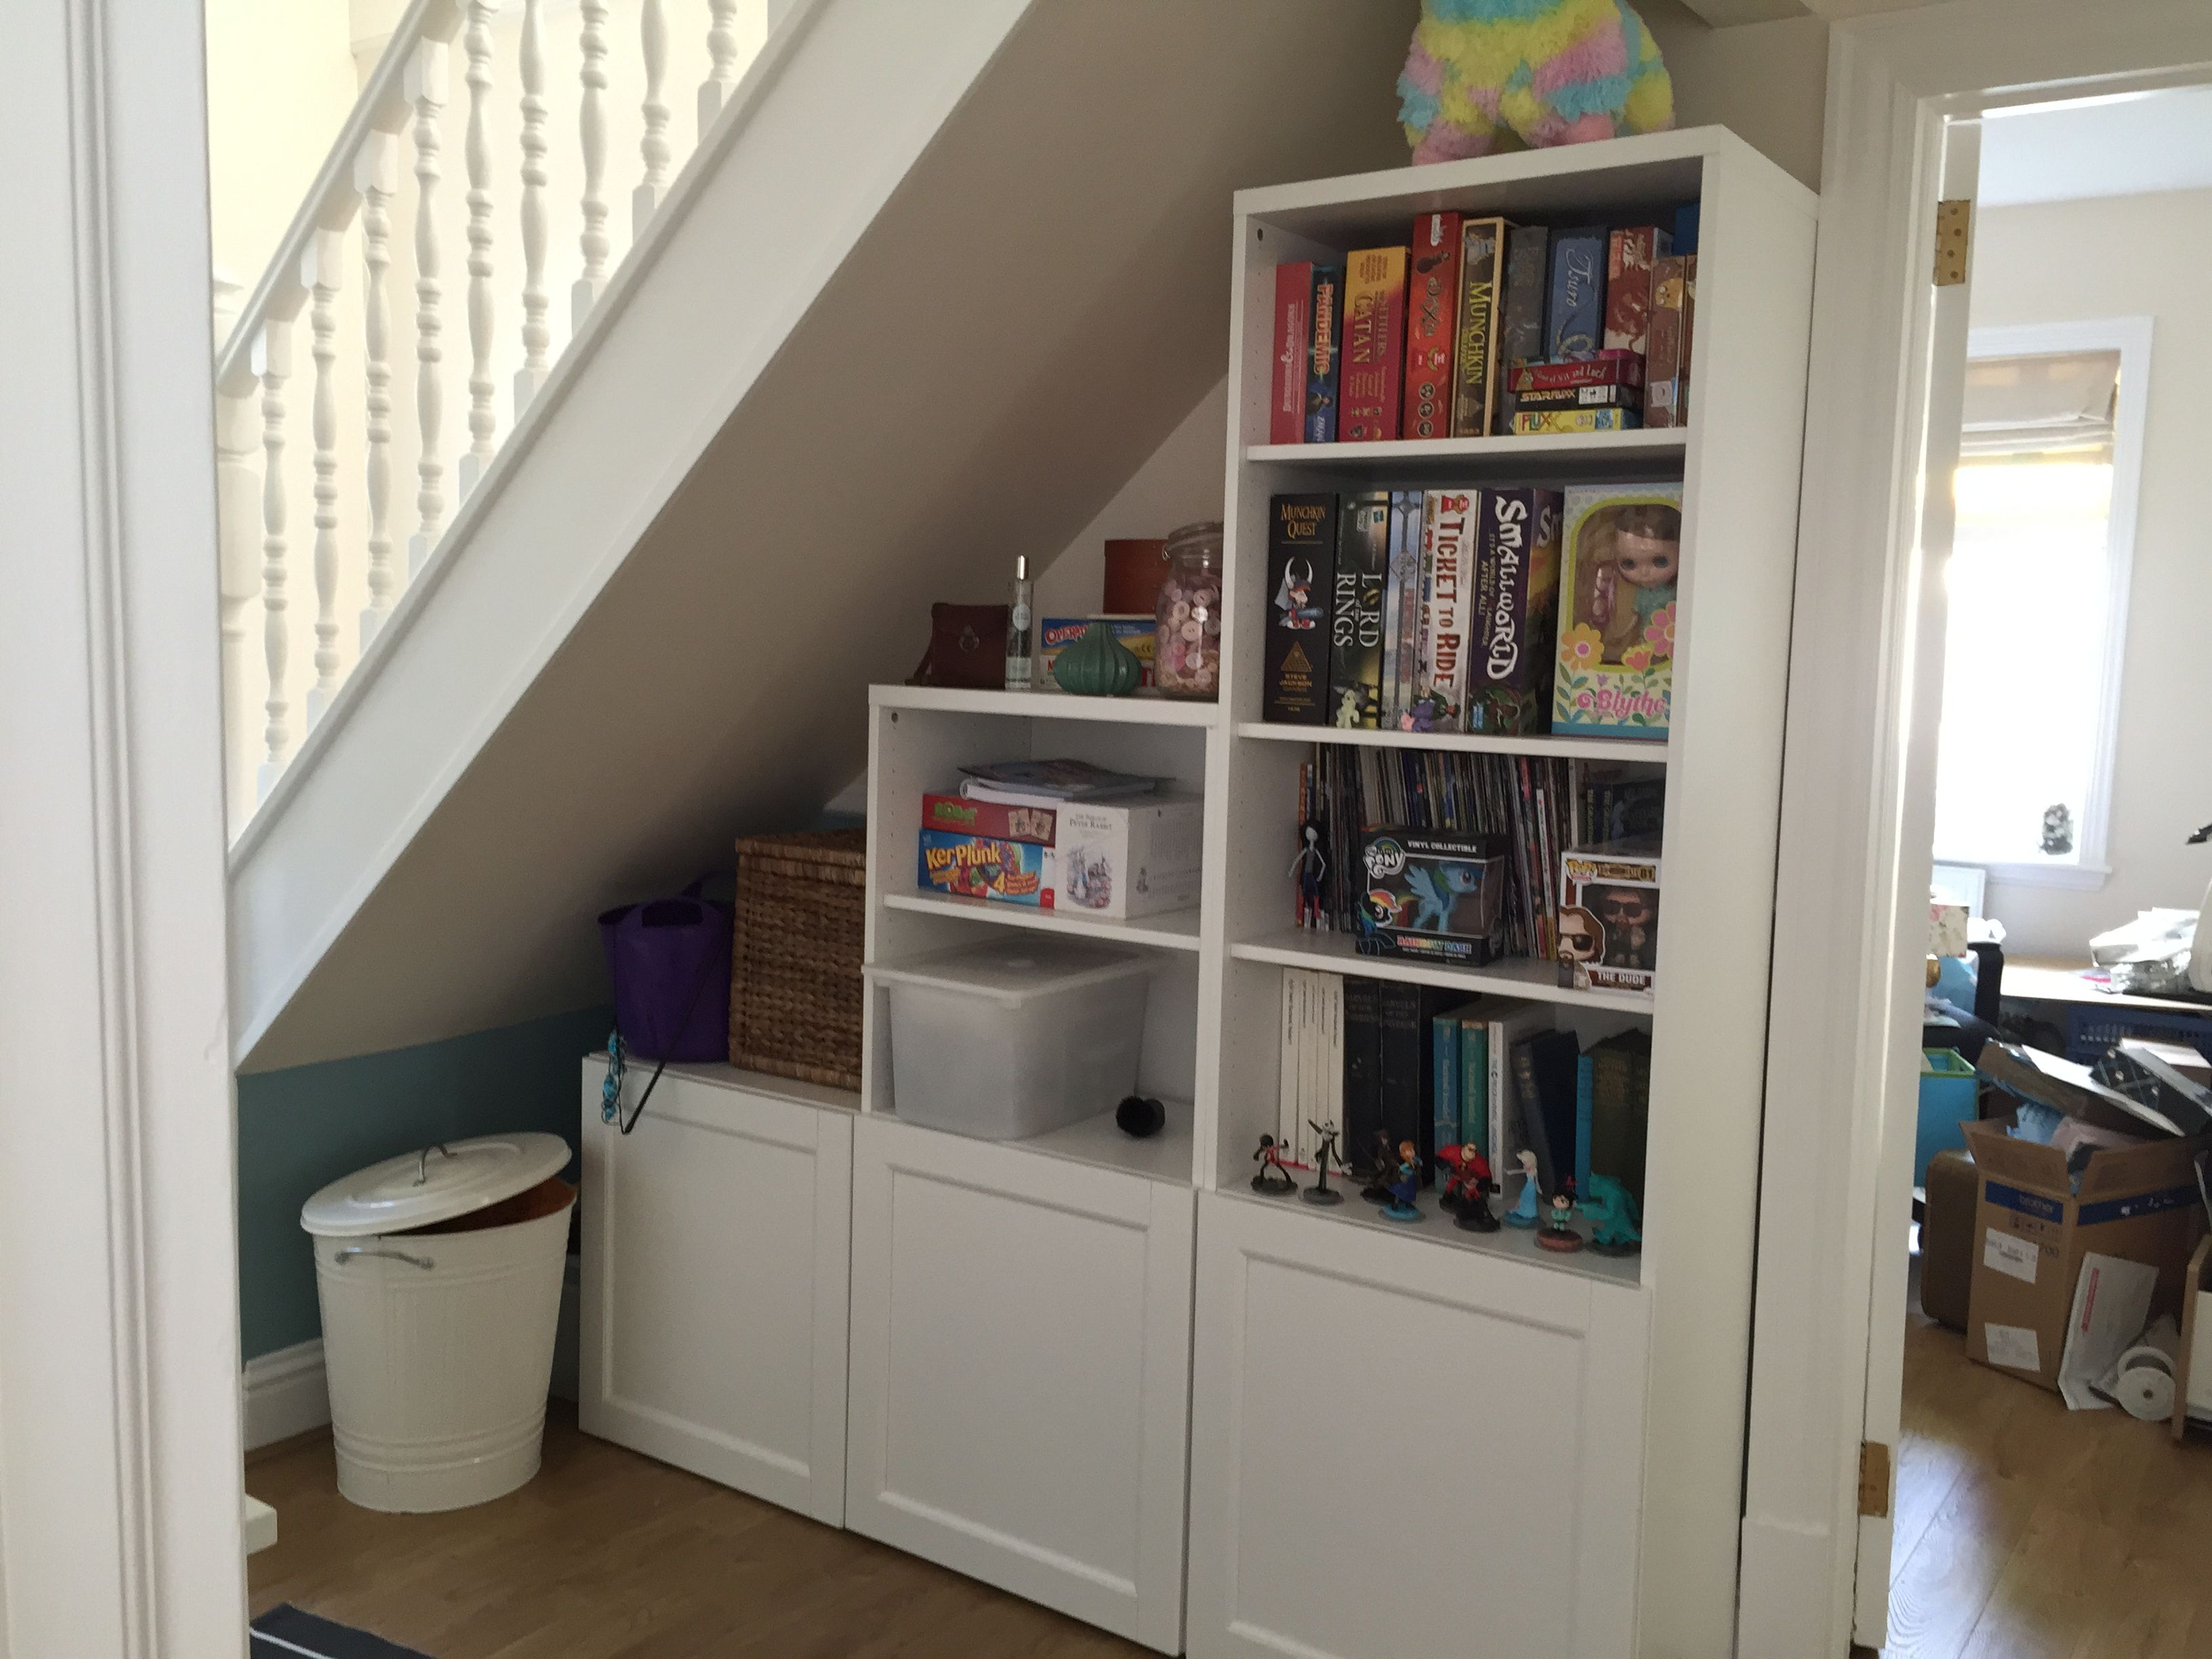 Staircase Shelving shelving unit under the stairs. ikea - besta. | entry | pinterest